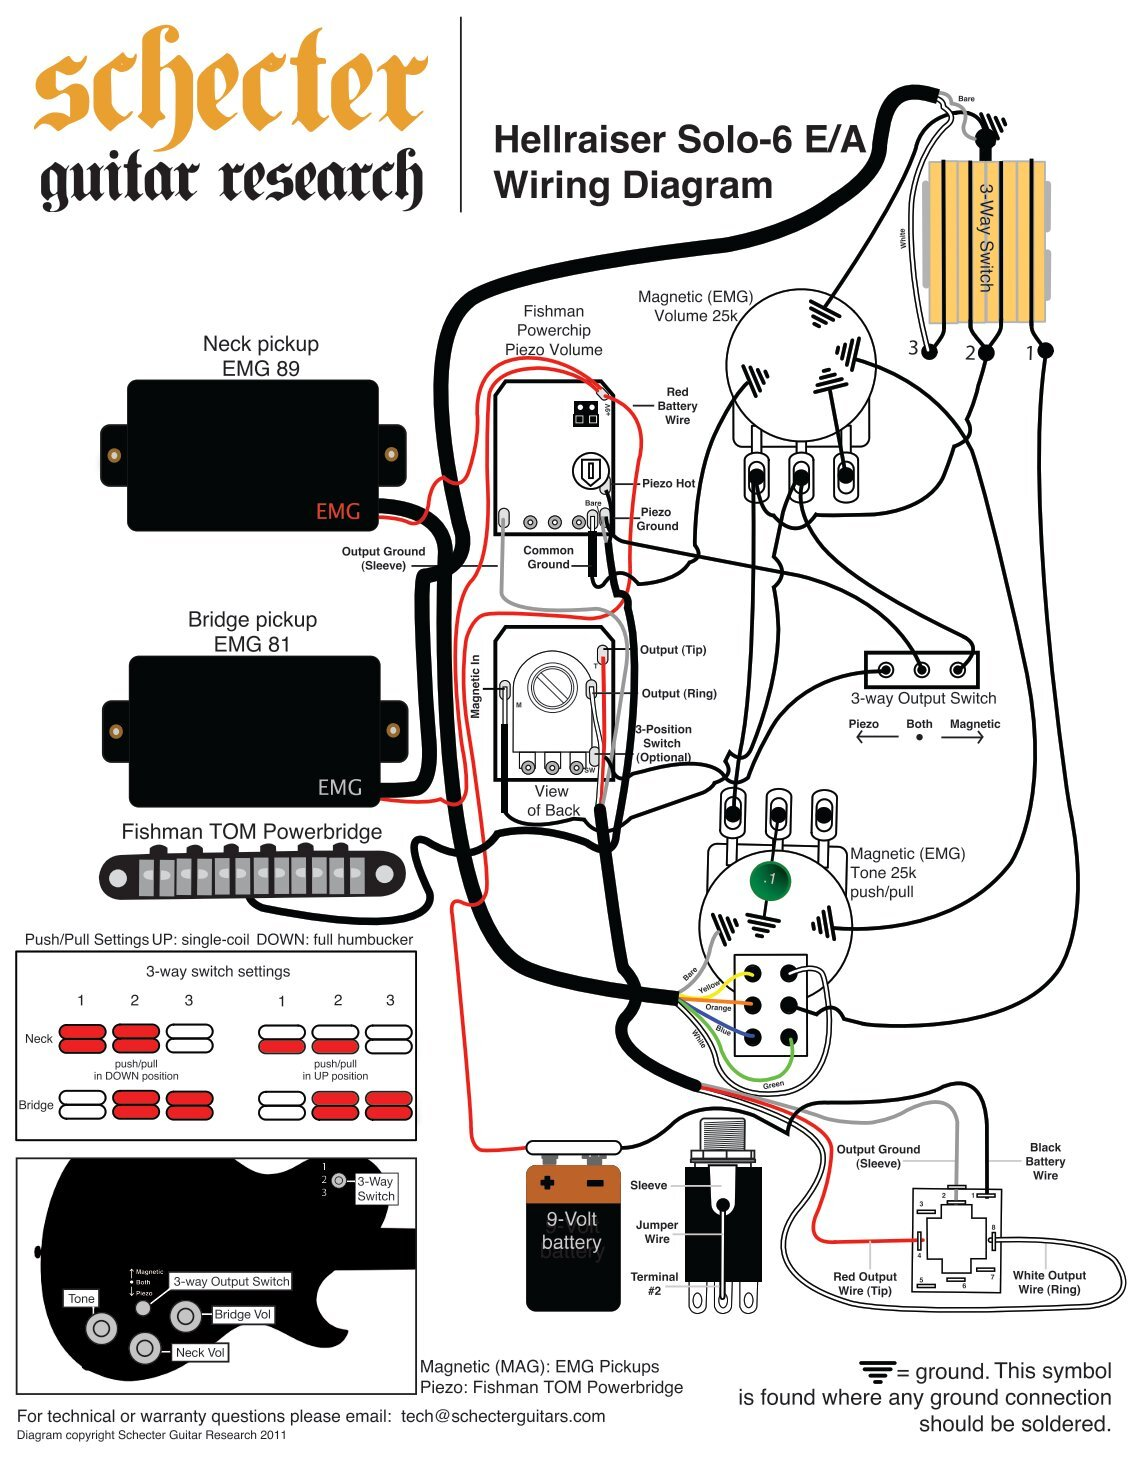 Schecter Strat Wiring Diagram Electrical Diagrams Free Download Guitar 2 Pickups Harness Emg